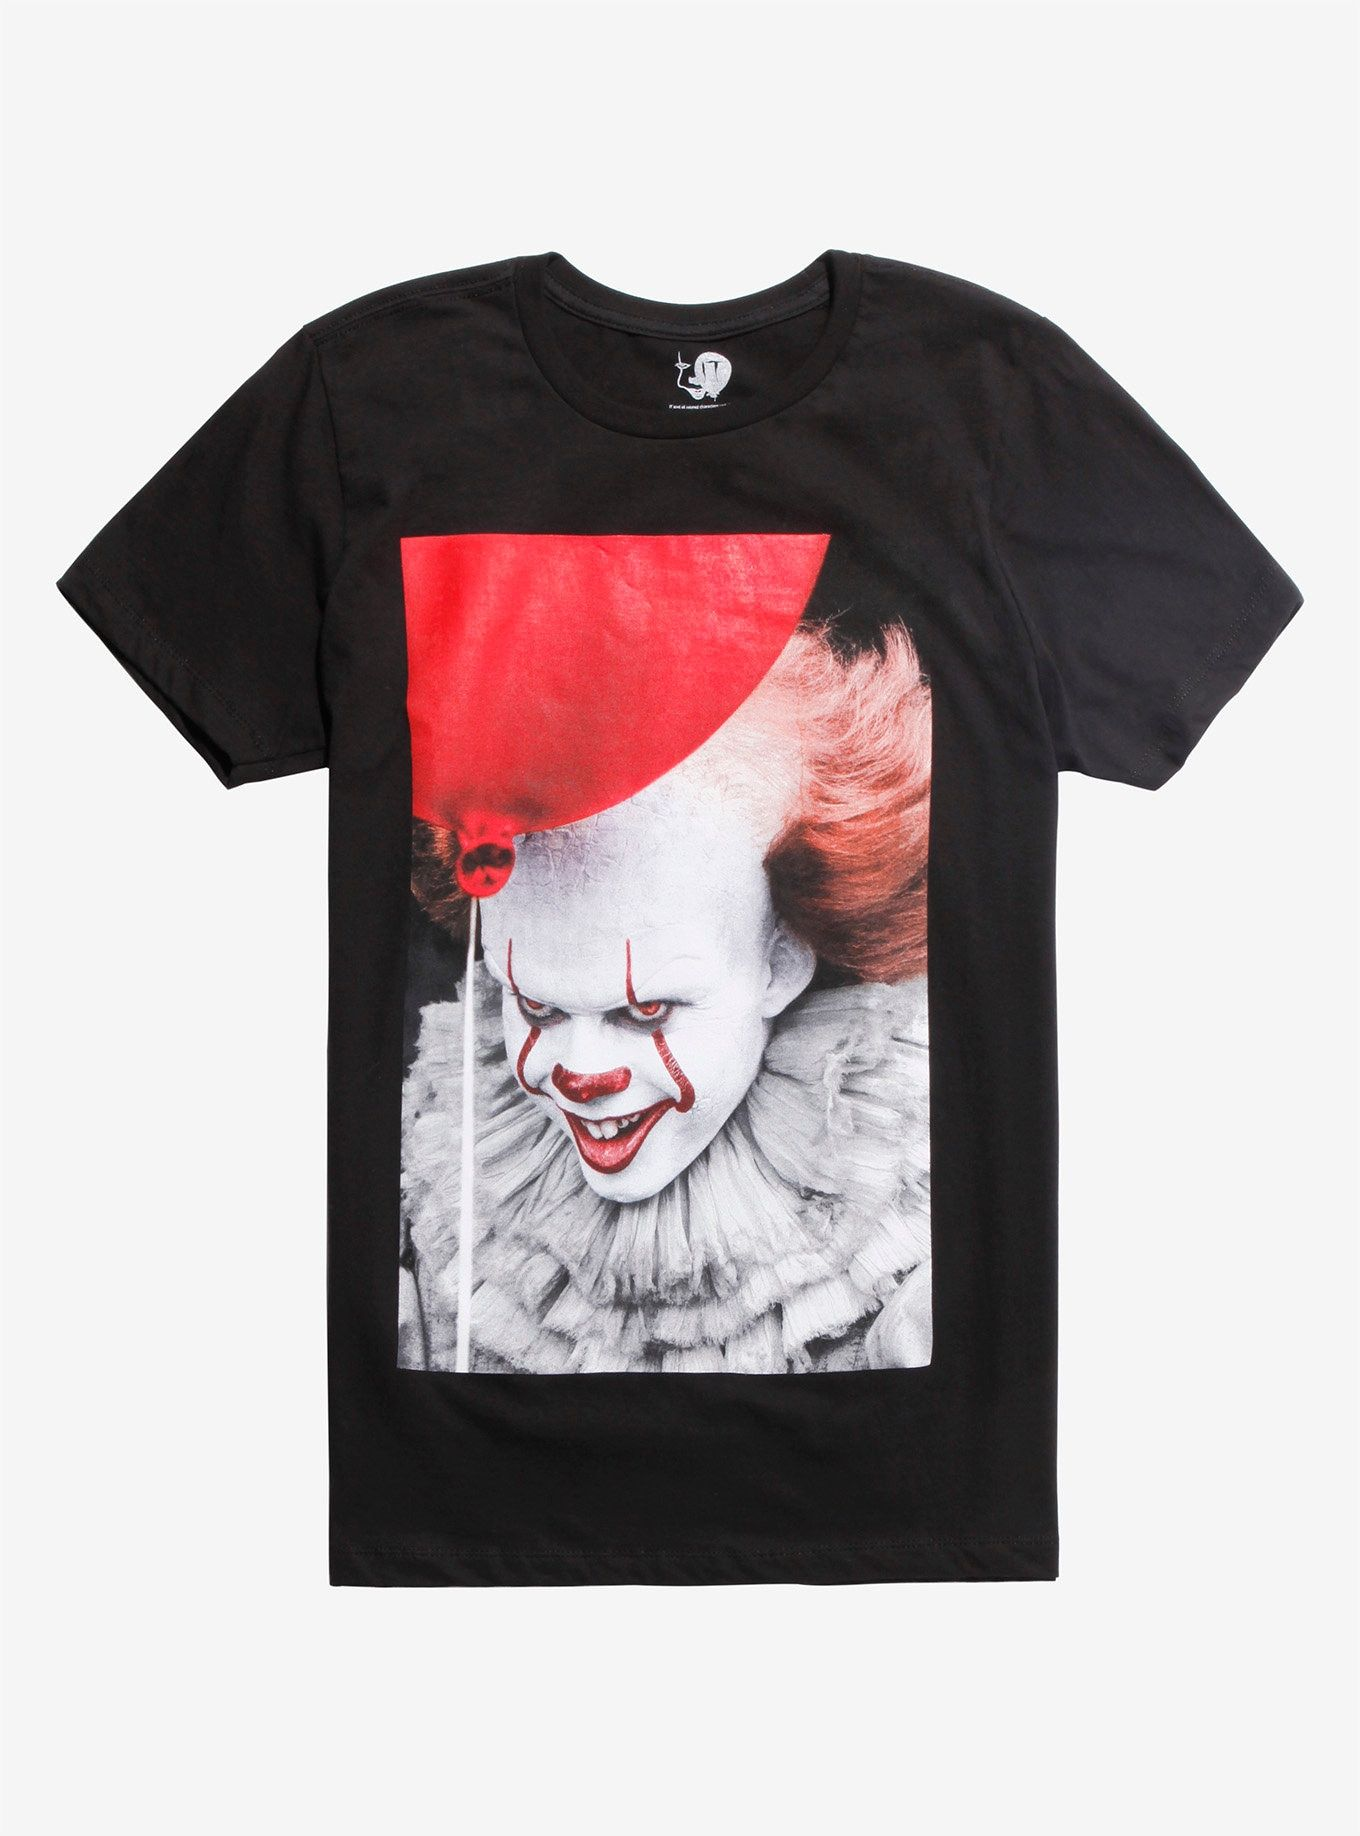 It Pennywise Balloon T Shirt Pennywise Horror Shirts Pennywise The Dancing Clown